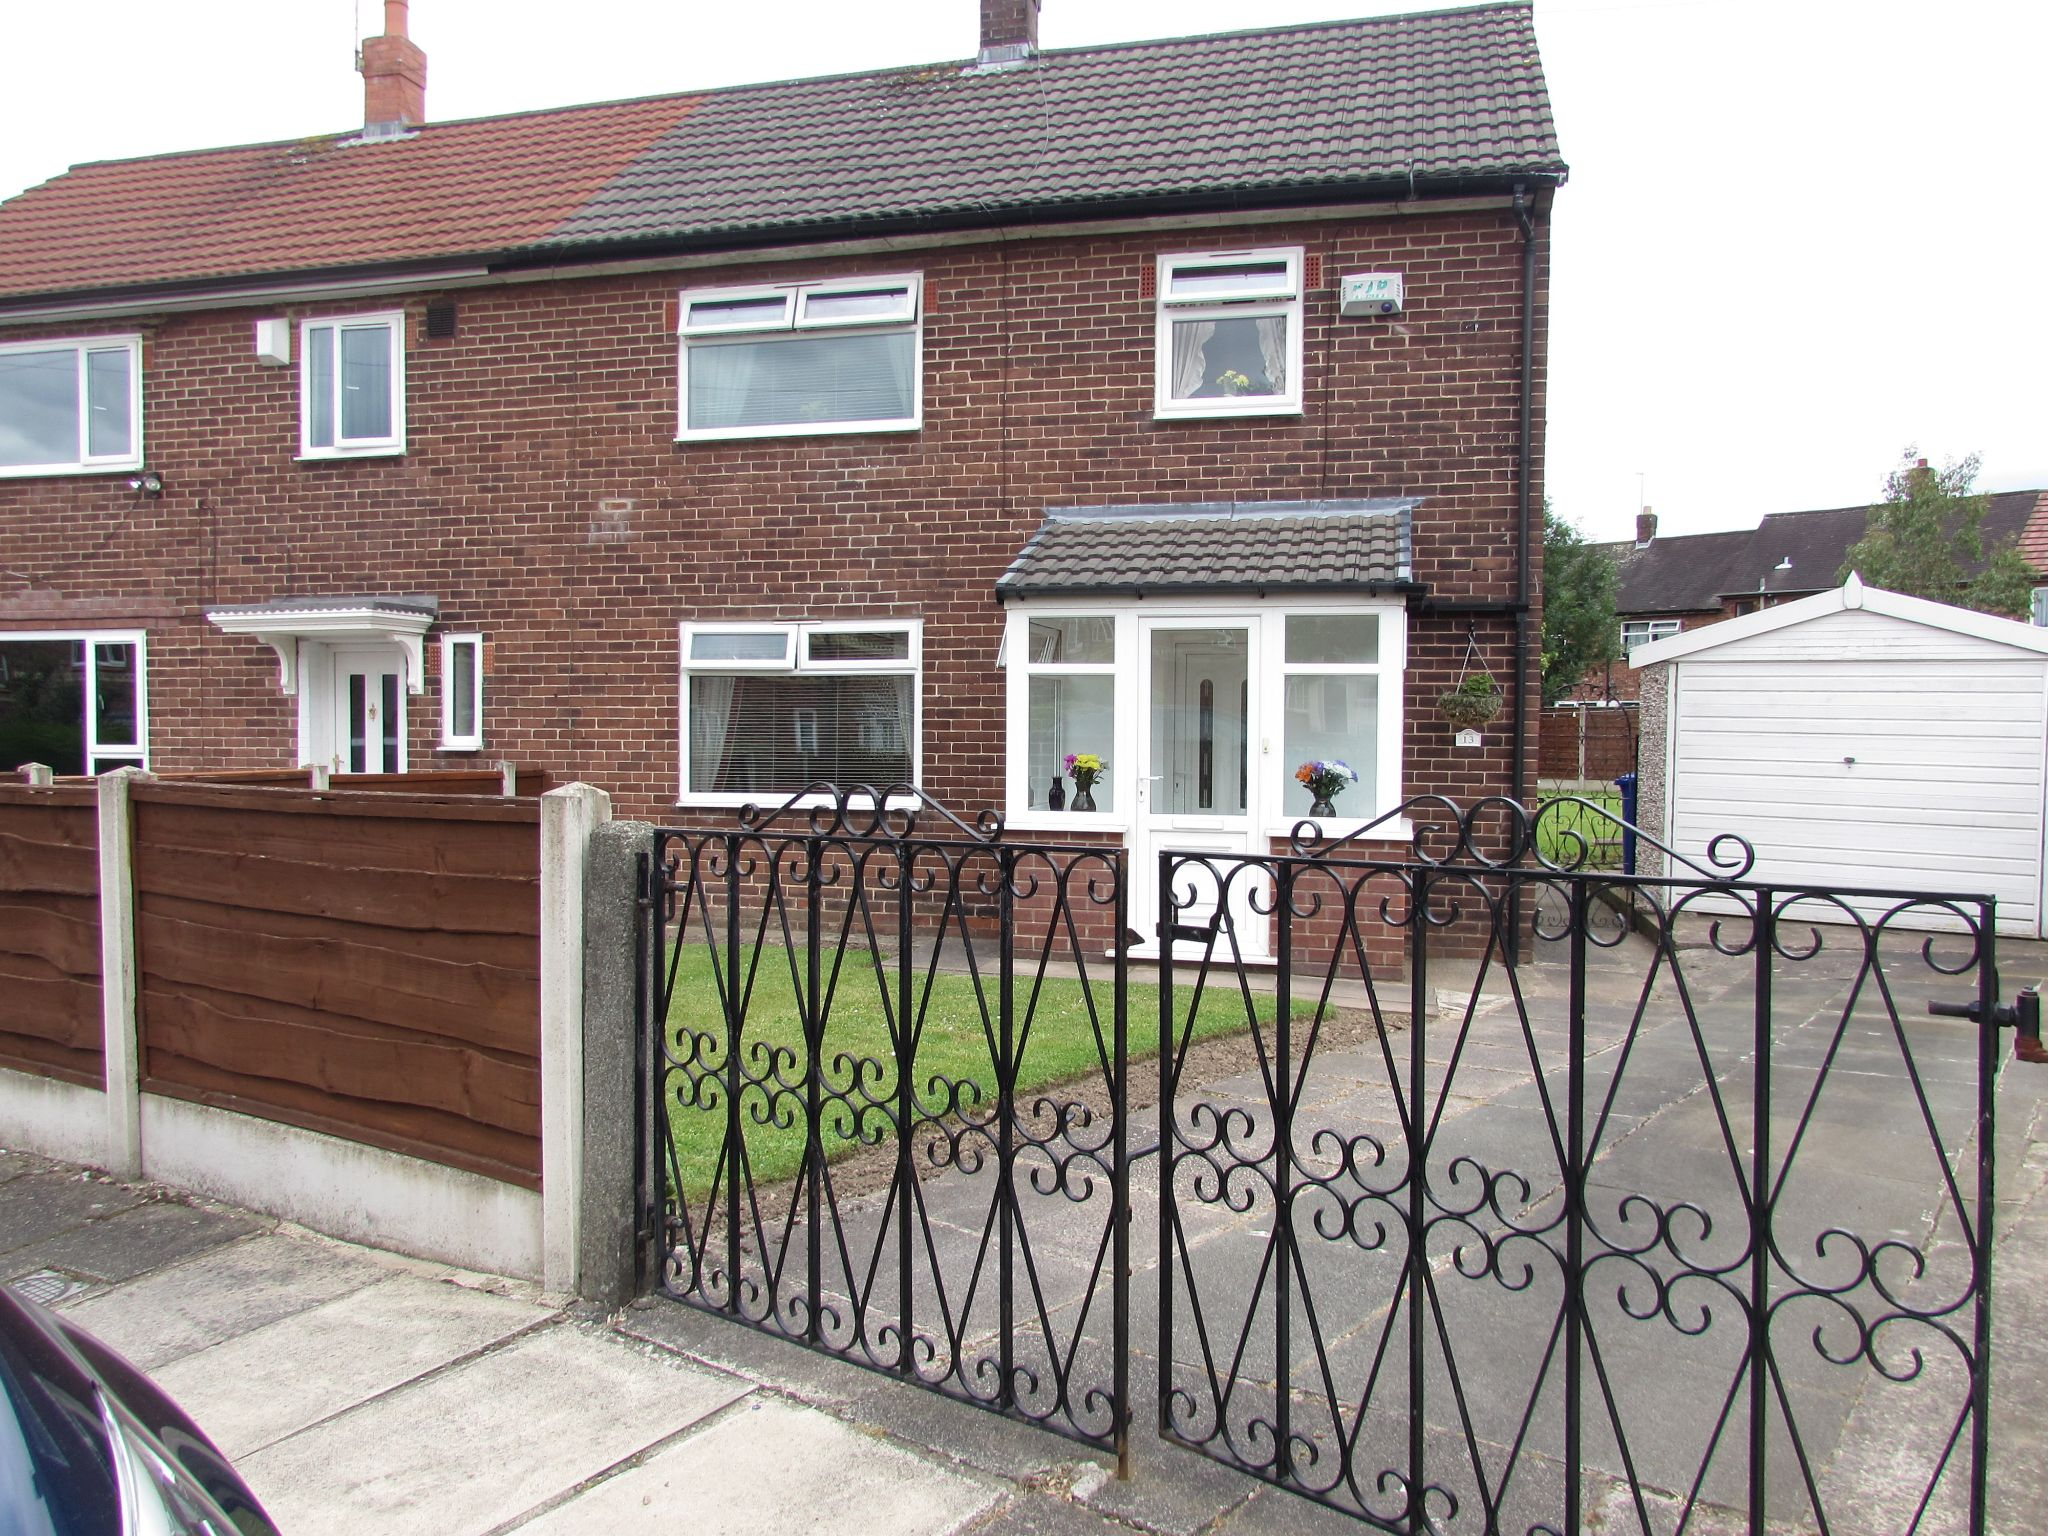 3 Bedroom End Terraced House For Sale - FRONT